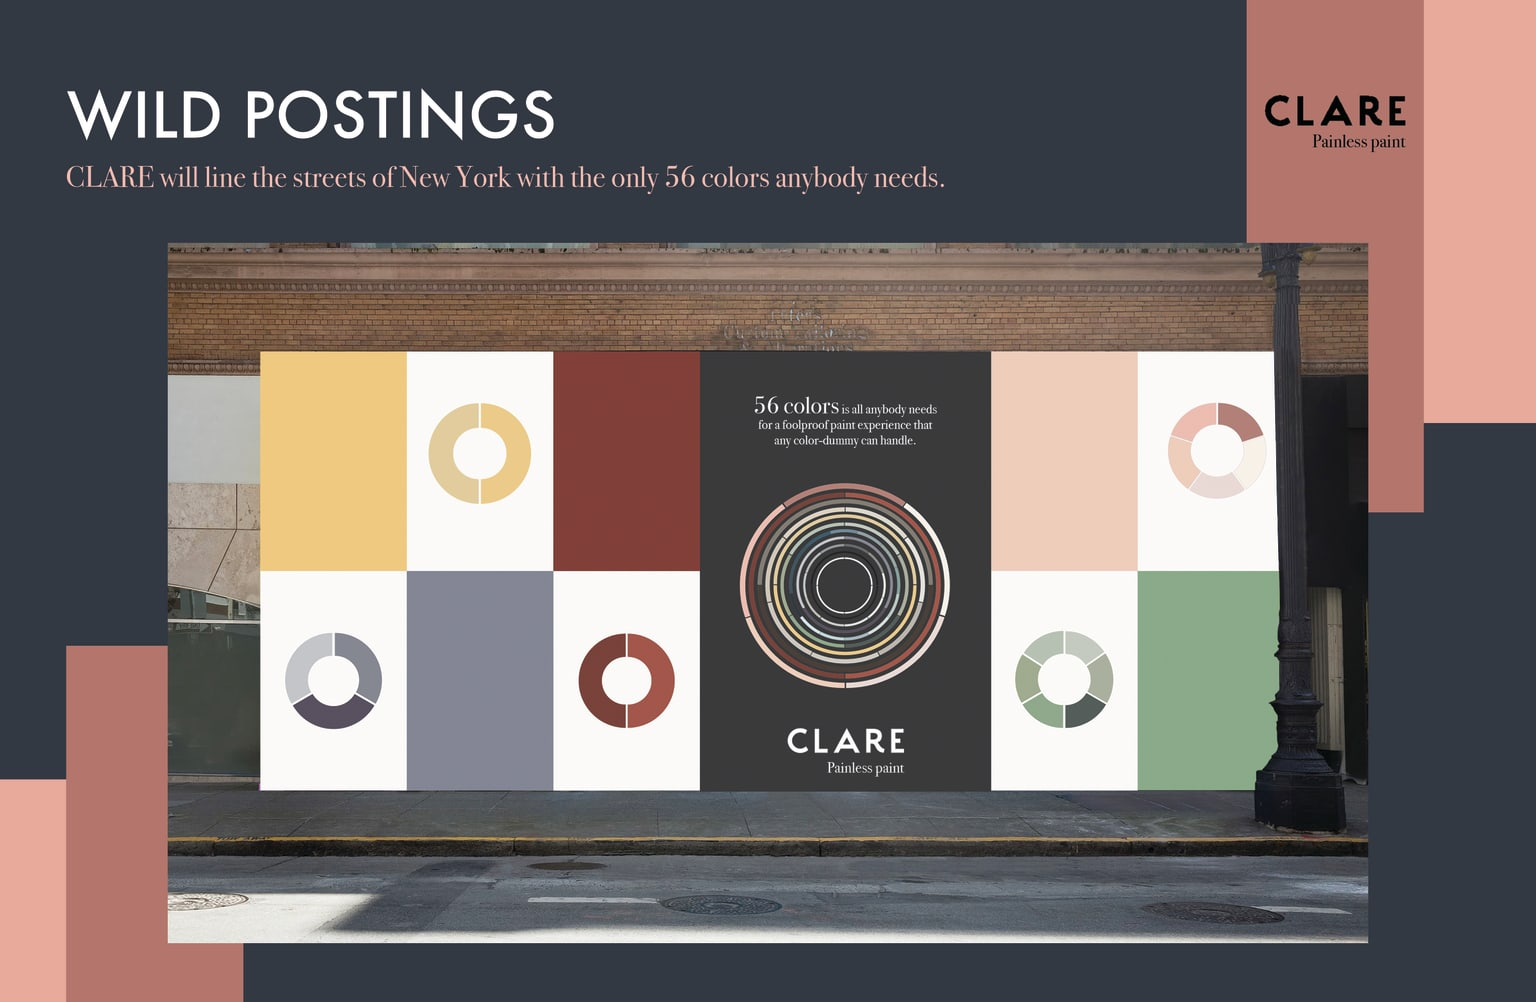 CLARE - Student Advertising Campaign